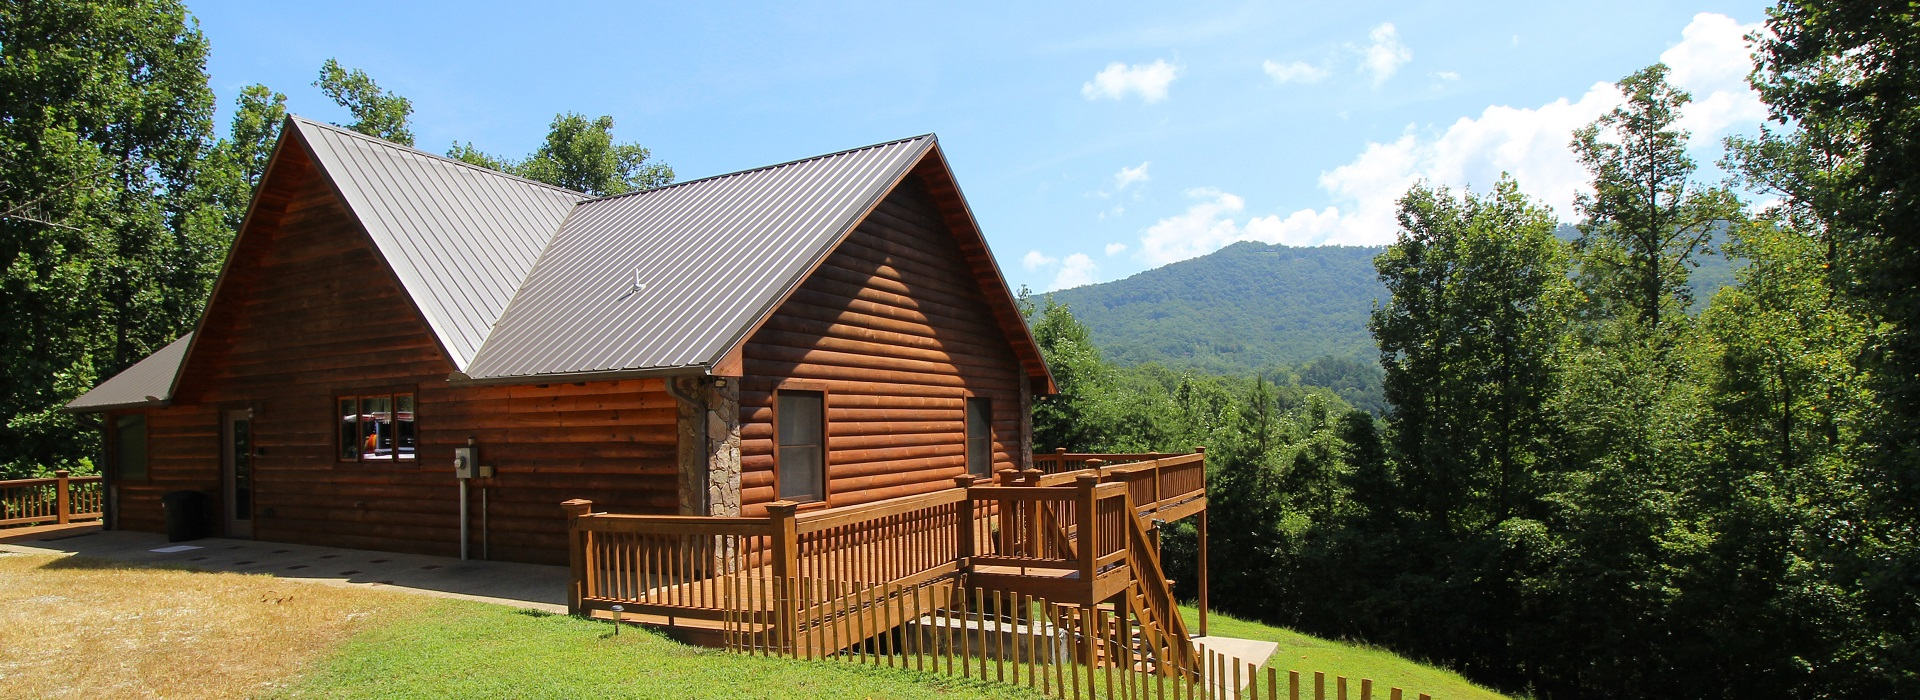 nc for rent cabins orig log cherokee in cabin rentals